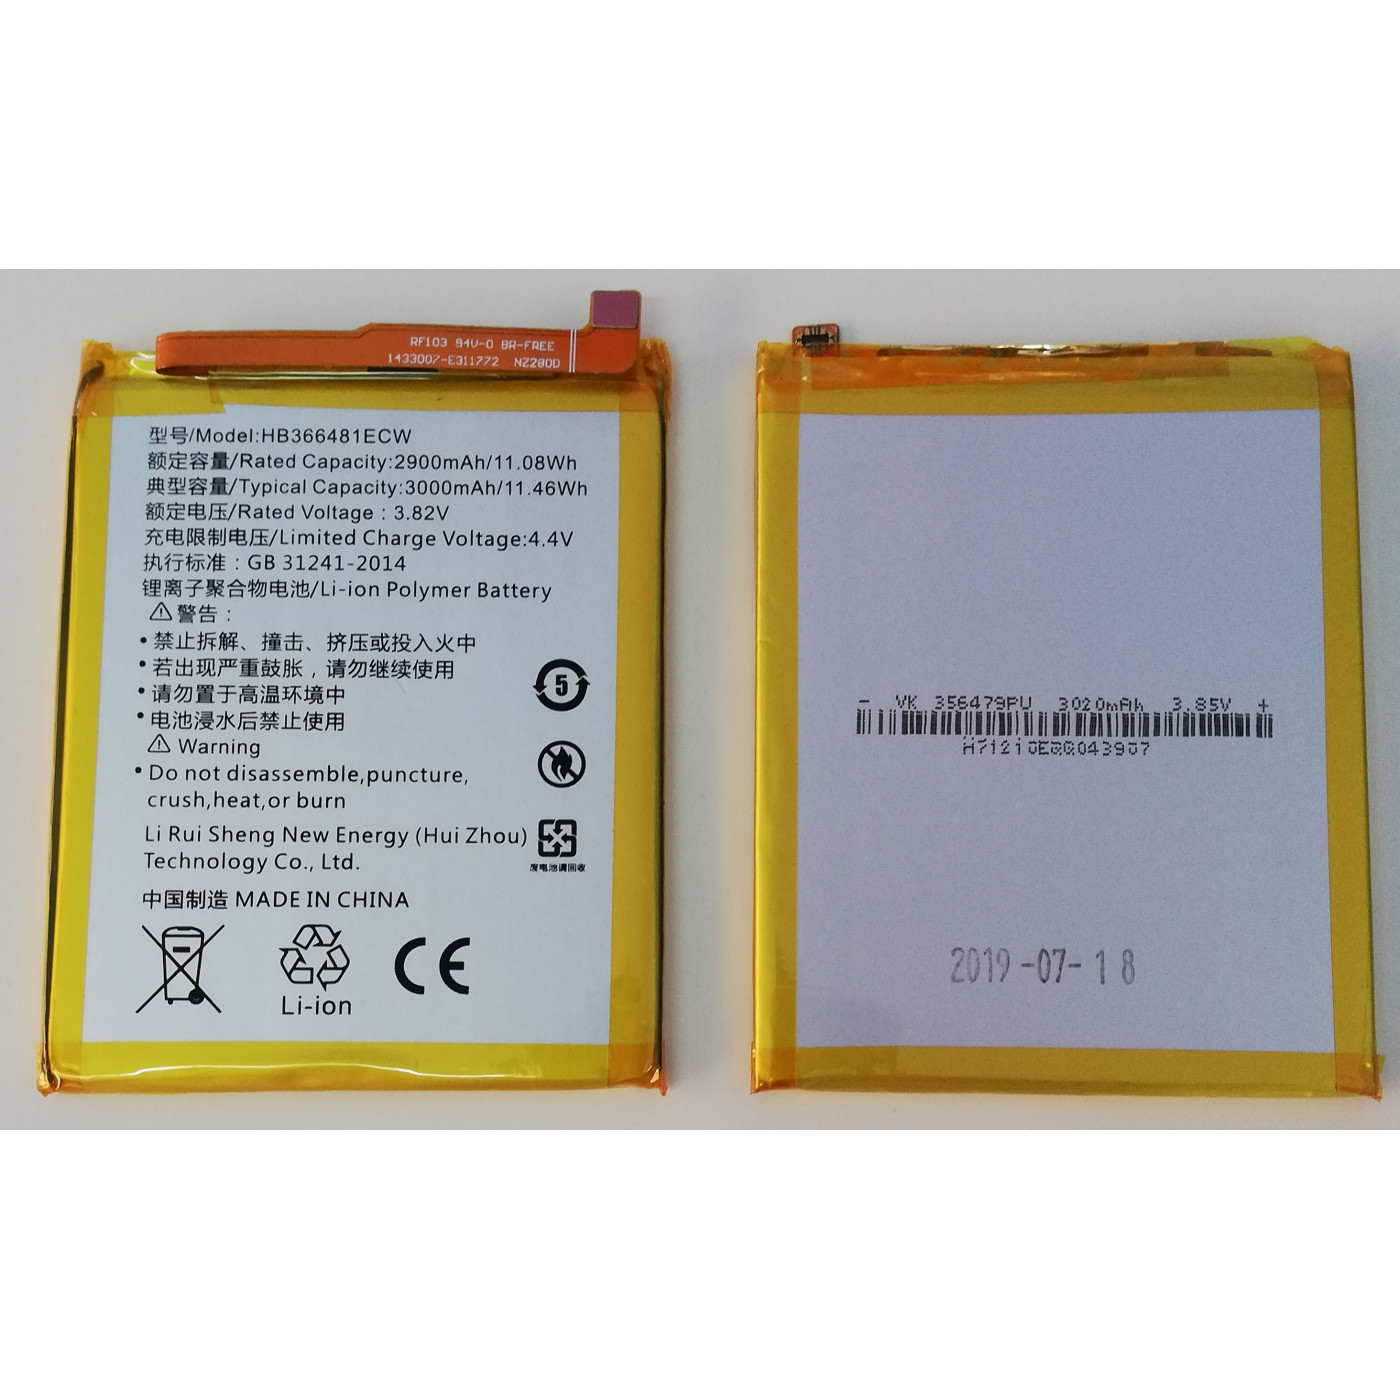 BATTERY for Huawei p8 p9 p10 p20 Lite 2017 Honor 8 HB366481ECW 3000mah